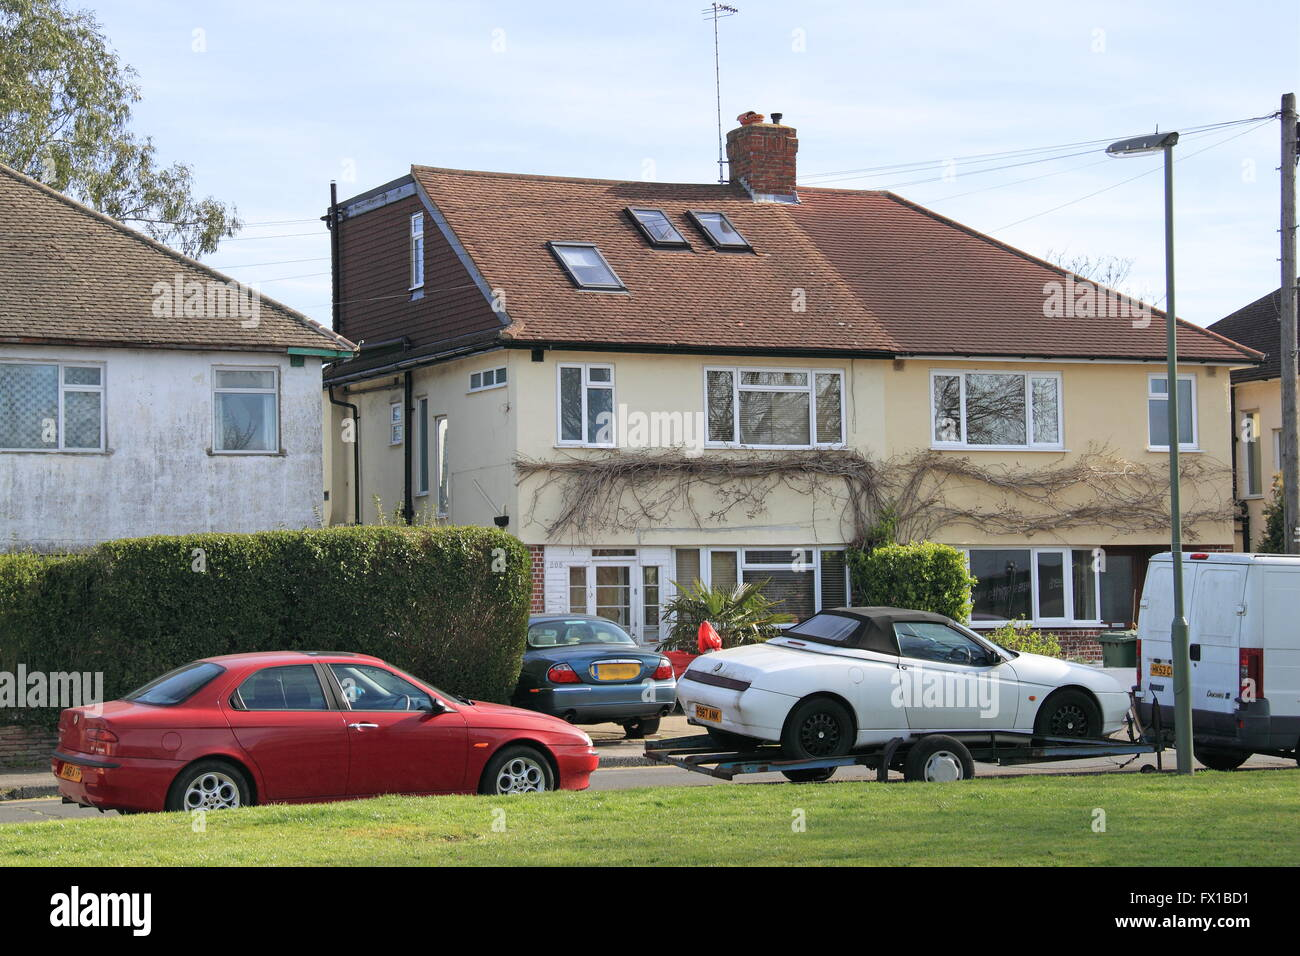 House where Robyn Mercer was found murdered, 18th March 2016, West Molesey, Surrey, England, Great Britain, United - Stock Image